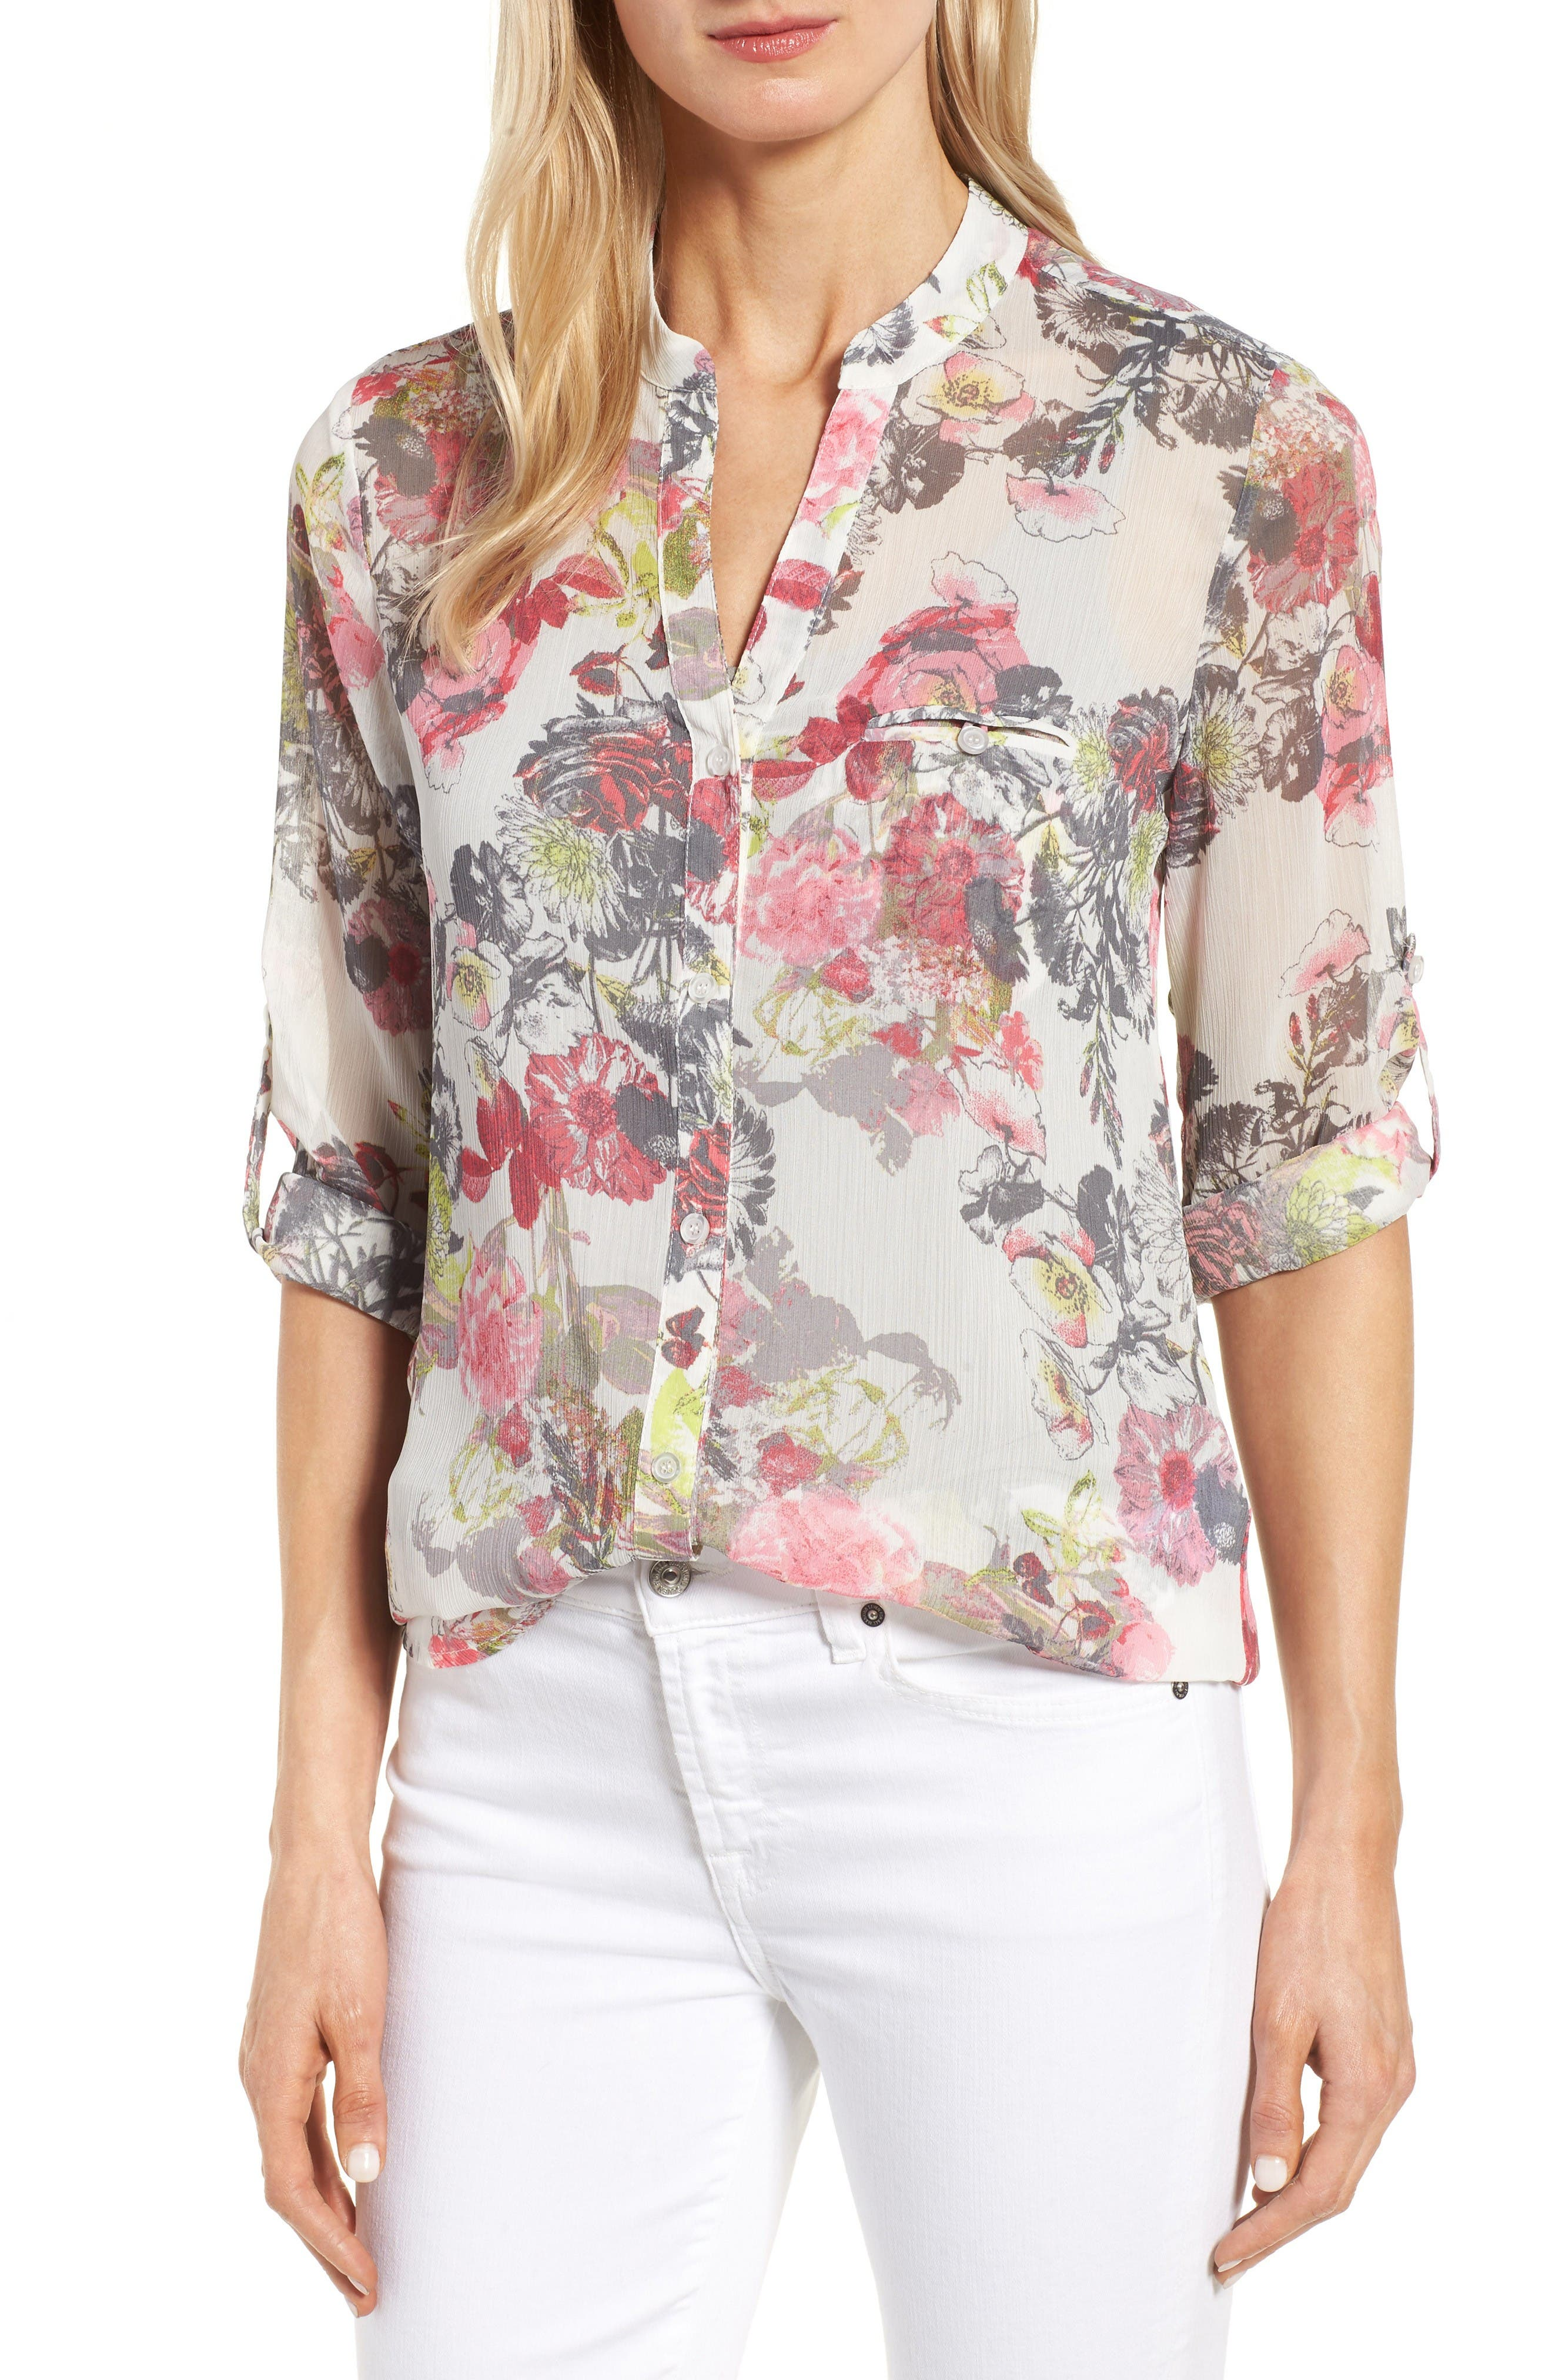 Main Image - KUT from the Kloth Floral Print Blouse